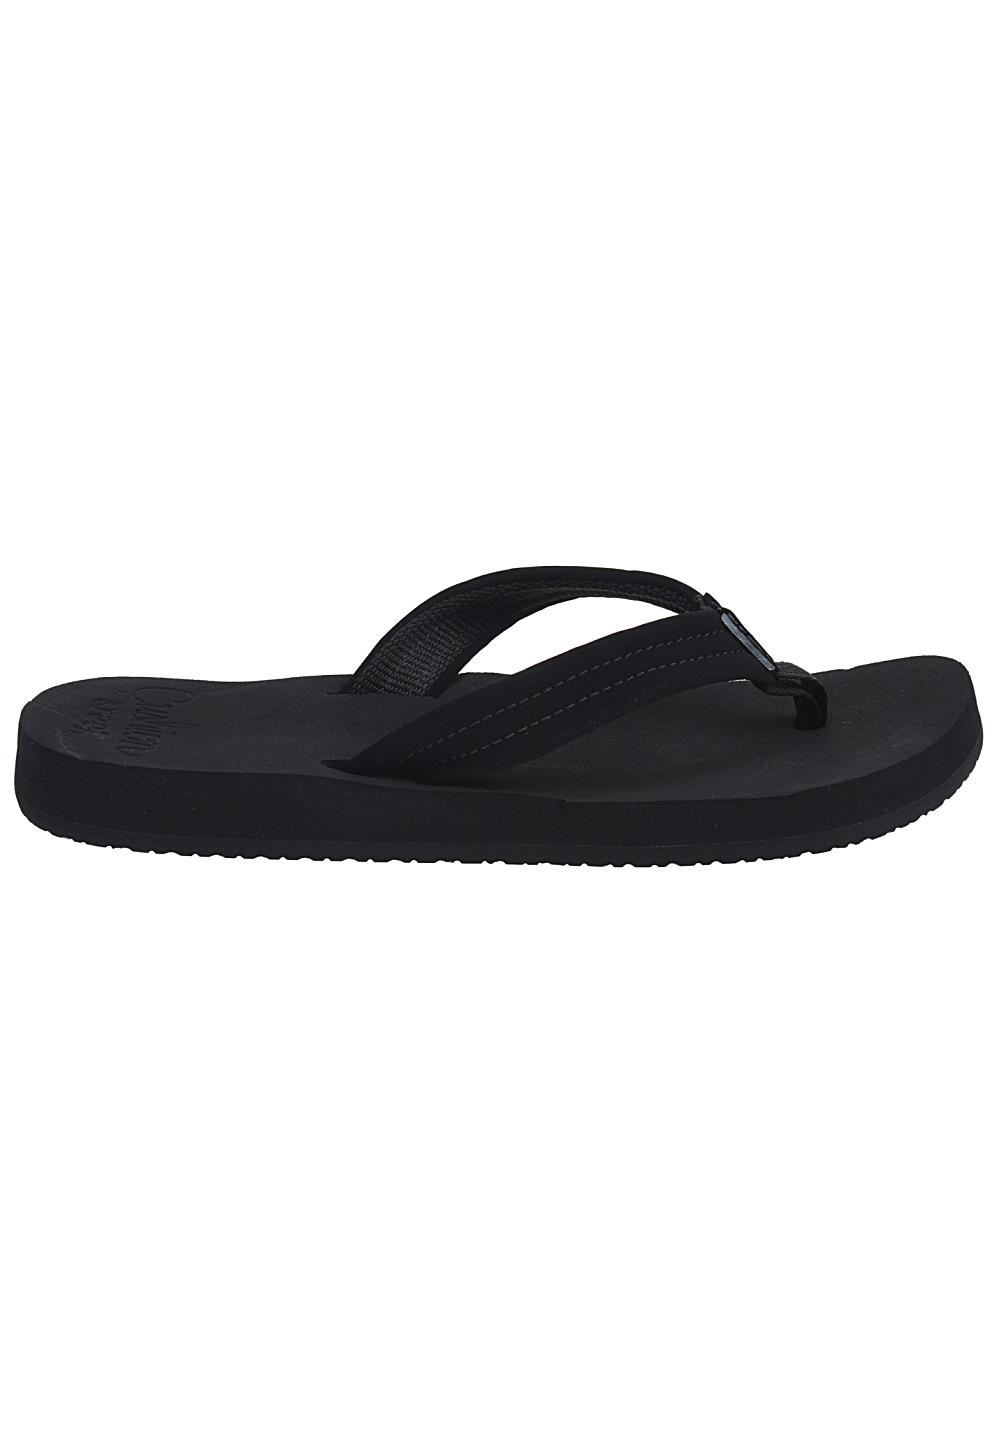 02c940fc3d81 ... Reef Cushion Breeze - Sandals for Women - Black. Back to Overview. 1   2  3. Previous. Next